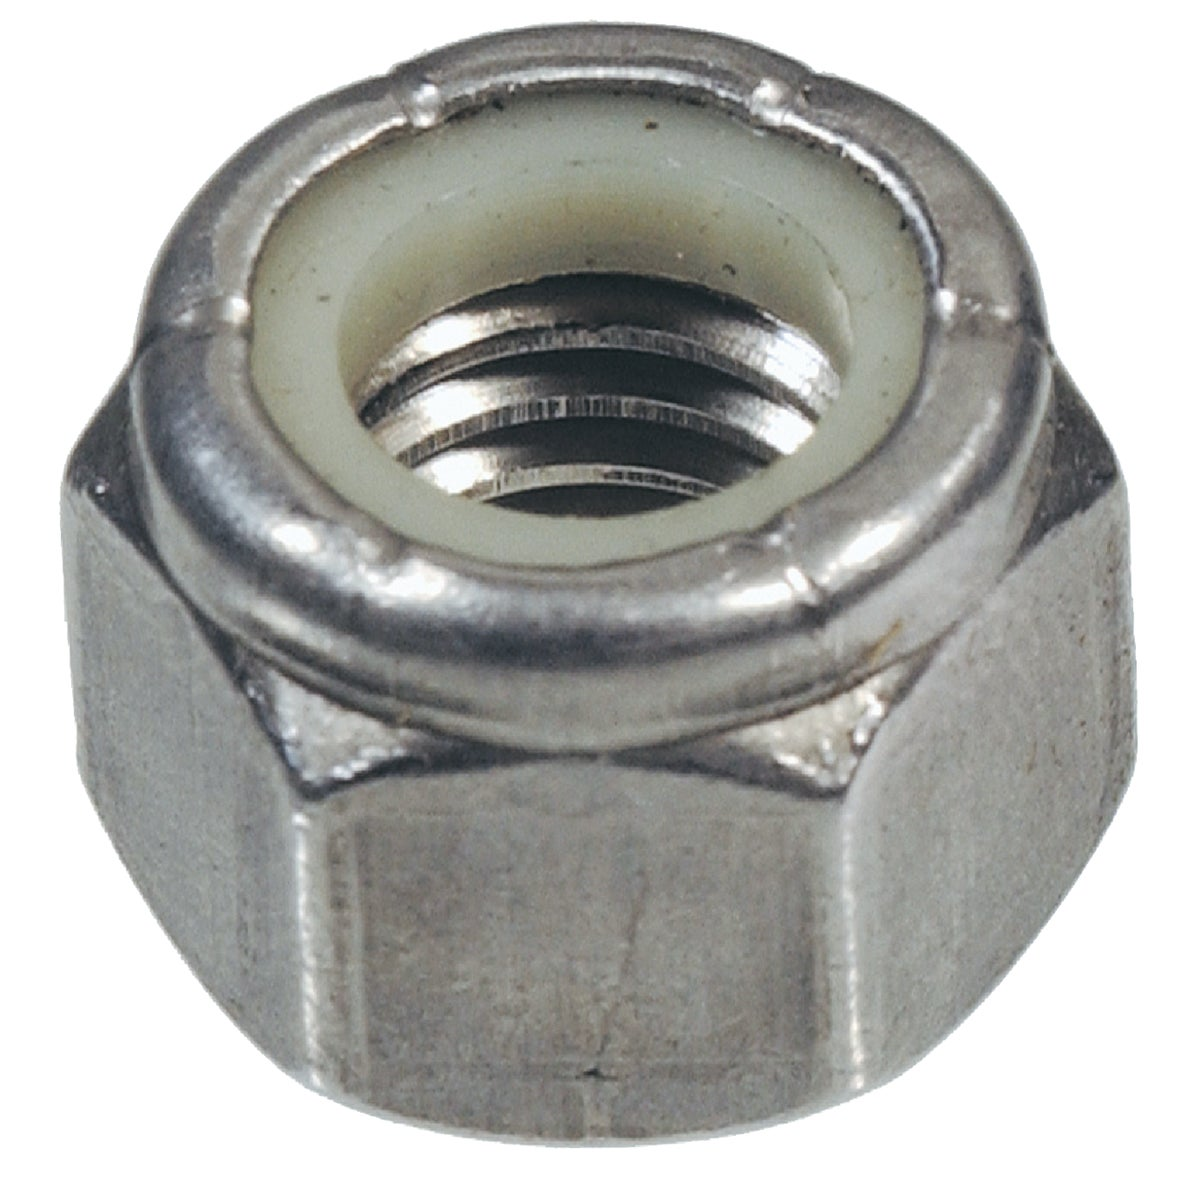 1/4-20 SS NYLON LOCK NUT - 829720 by Hillman Fastener